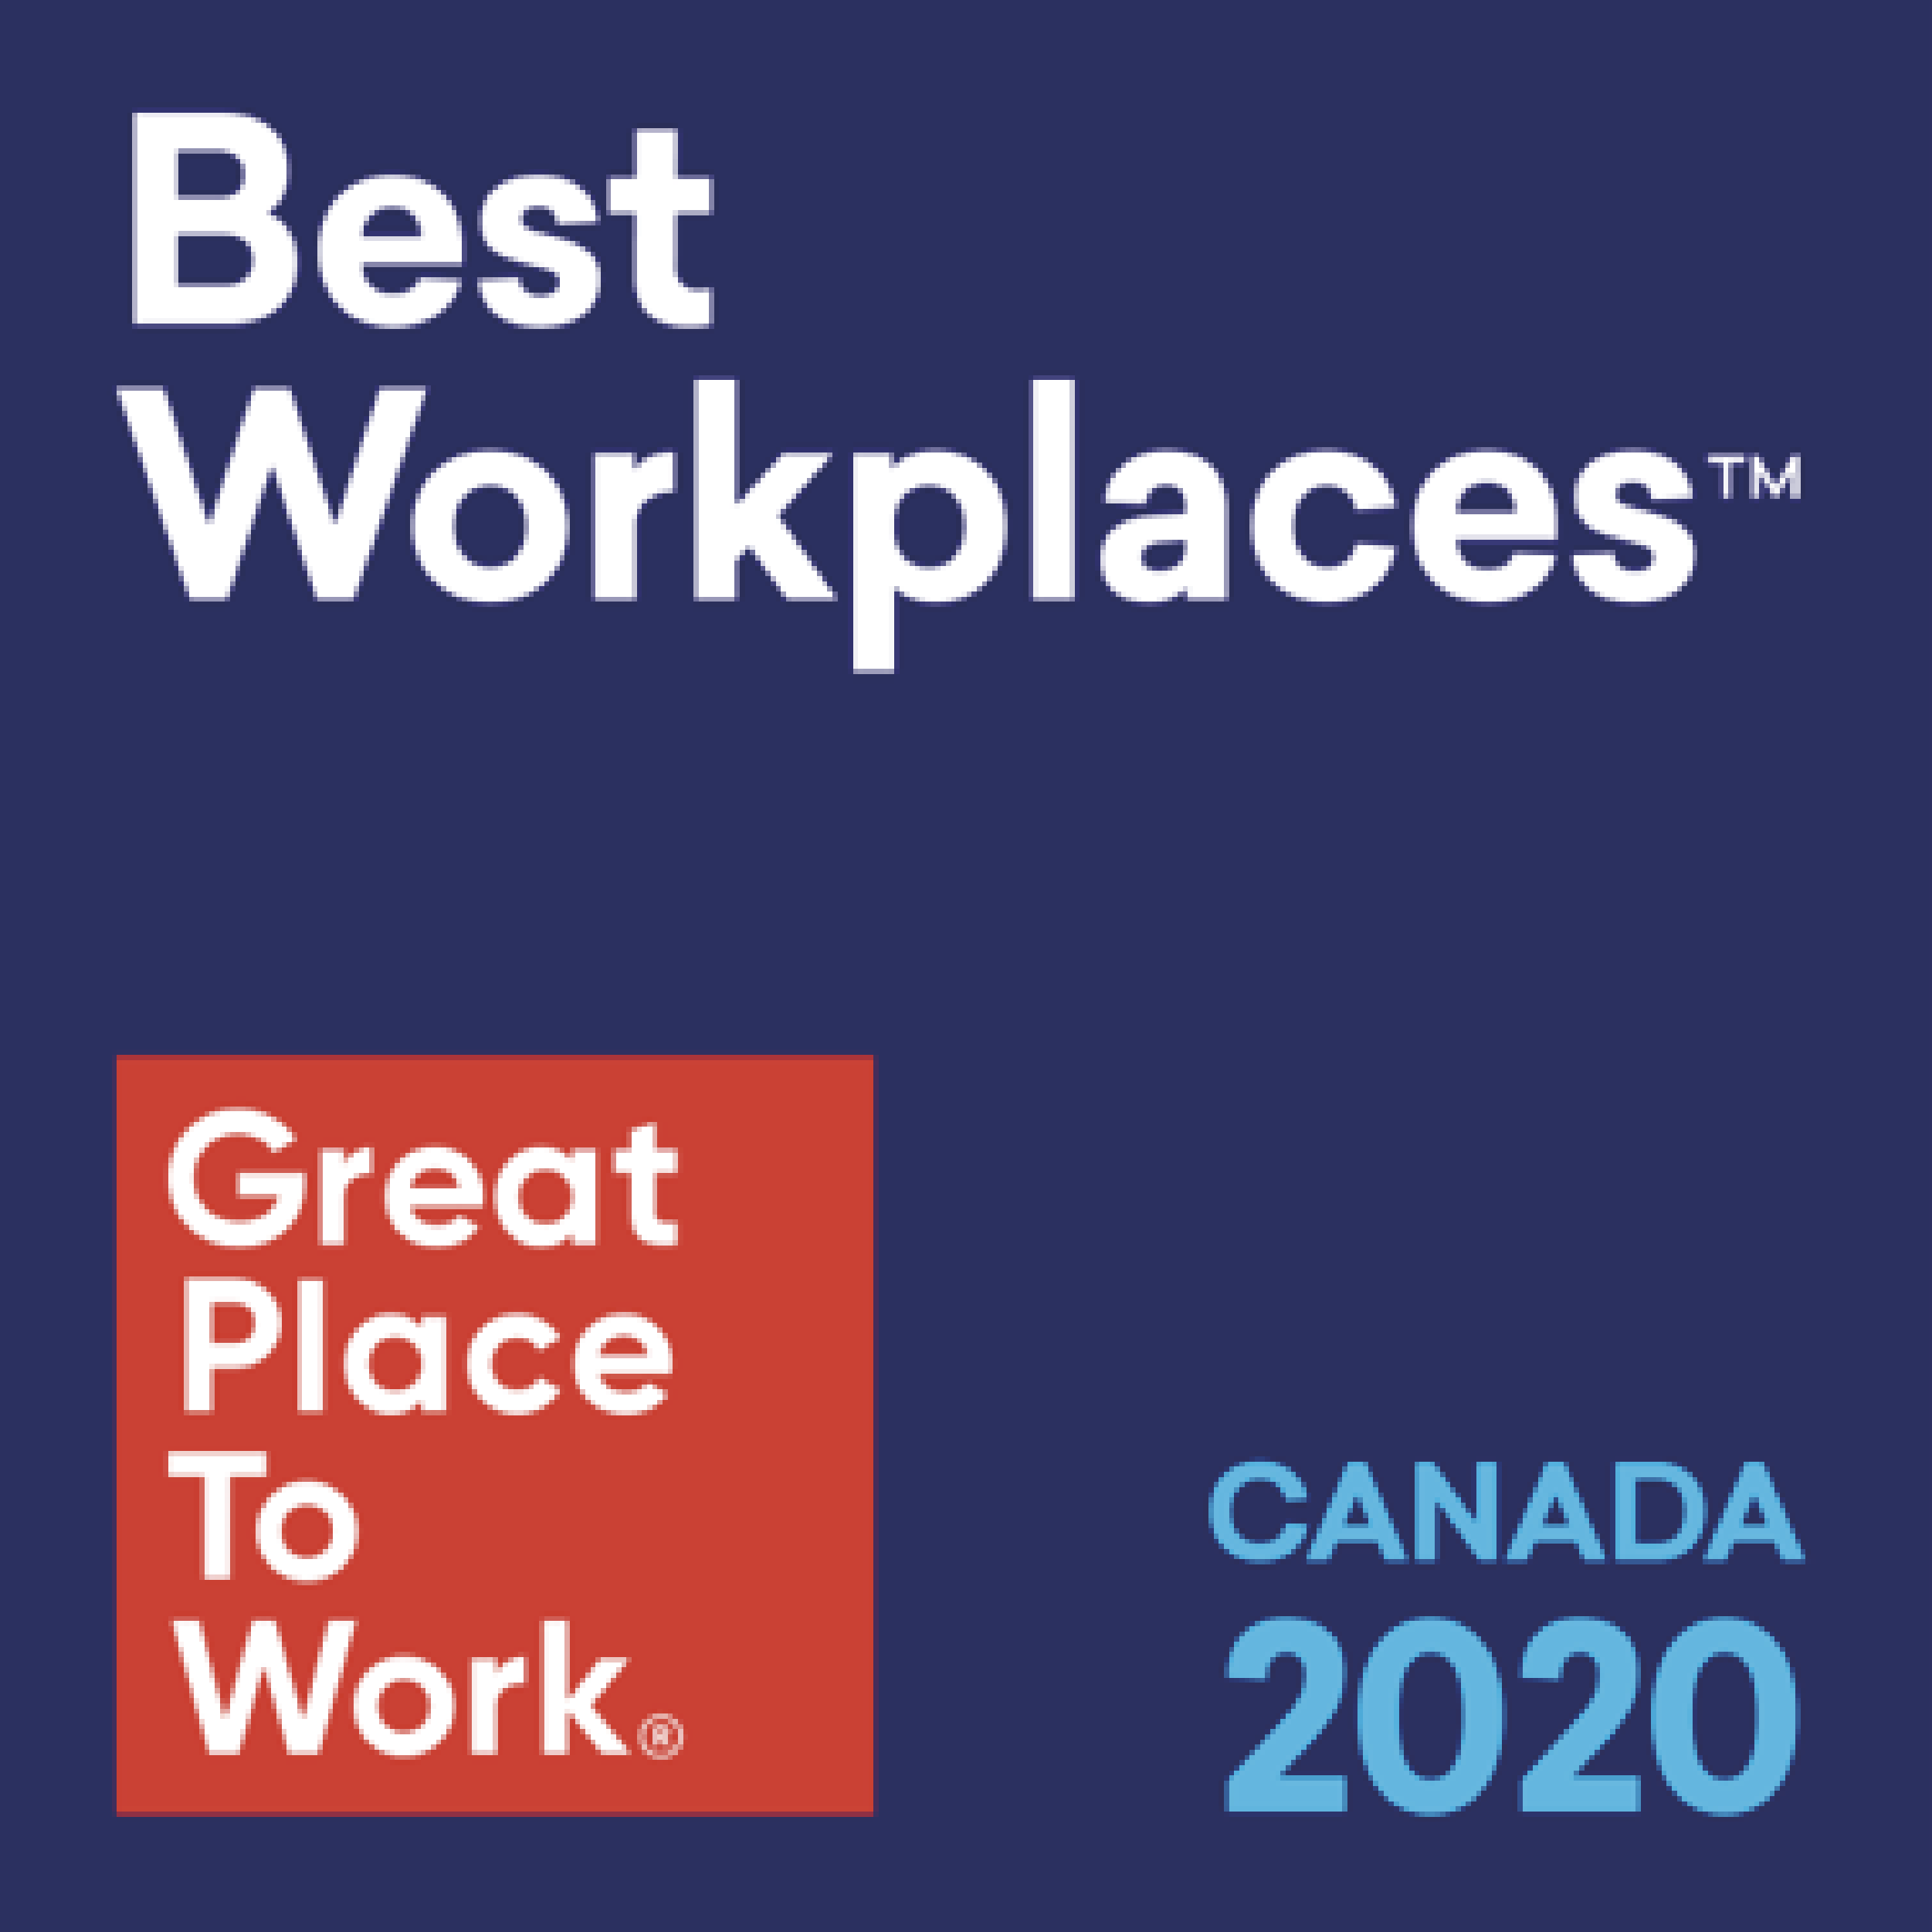 Best Workplaces Canada 2020